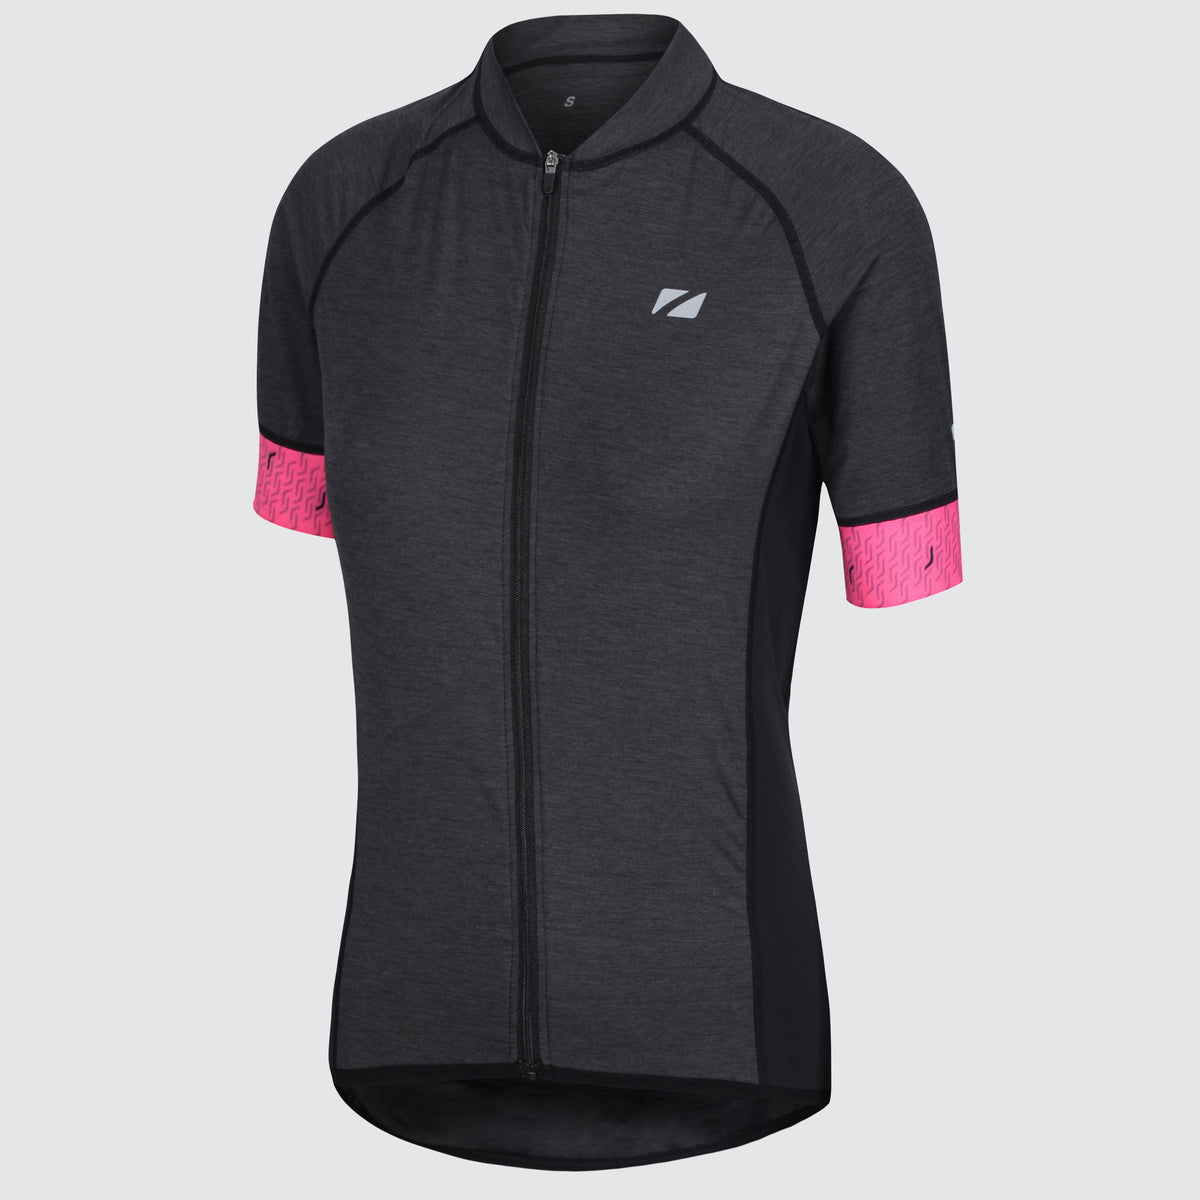 Women's Performance Culture Cycle Jersey